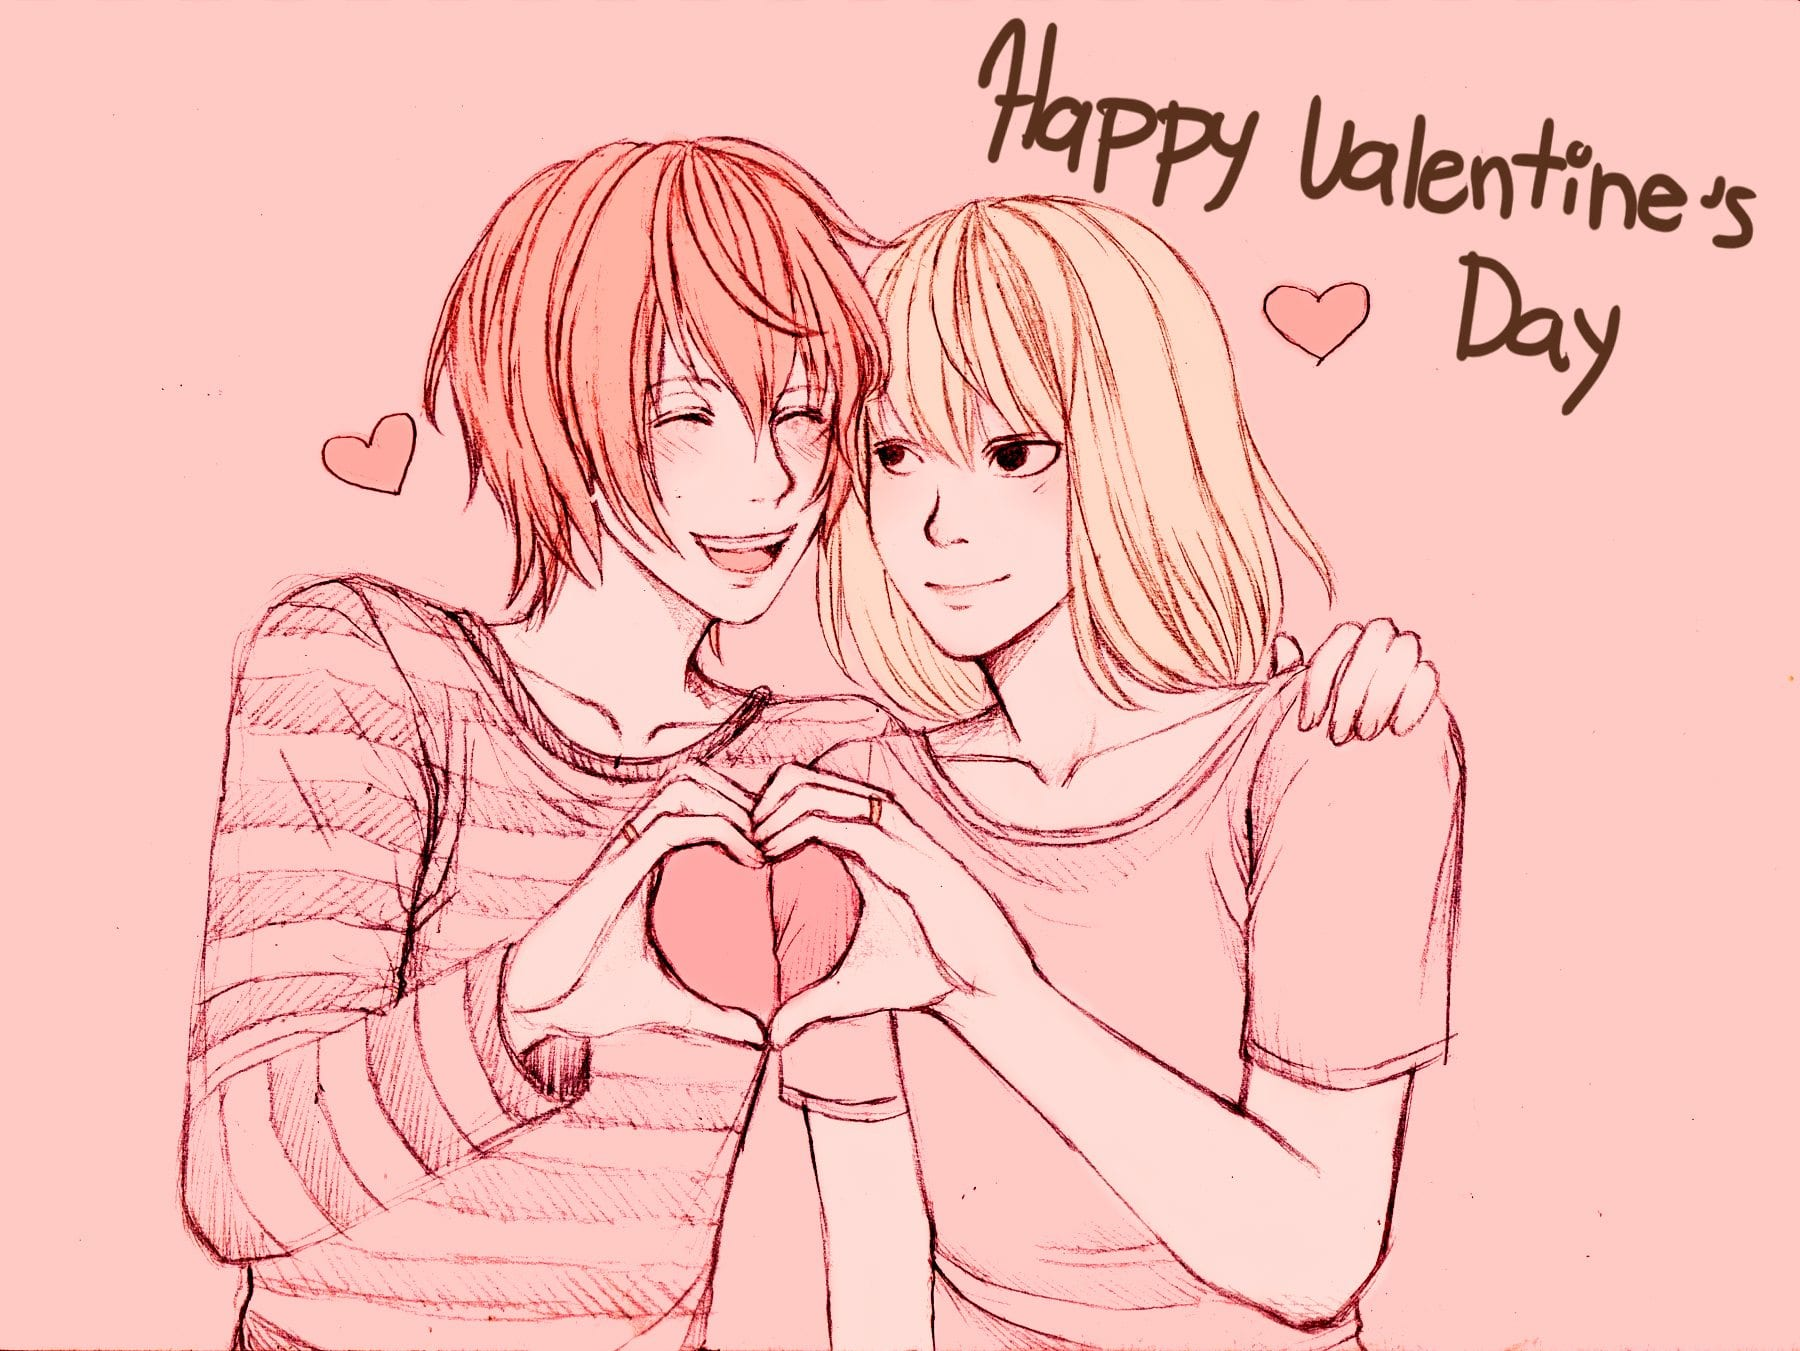 happy-valentines-day-hd-wallpapers-free-download-romantic-couple-in-the-pink